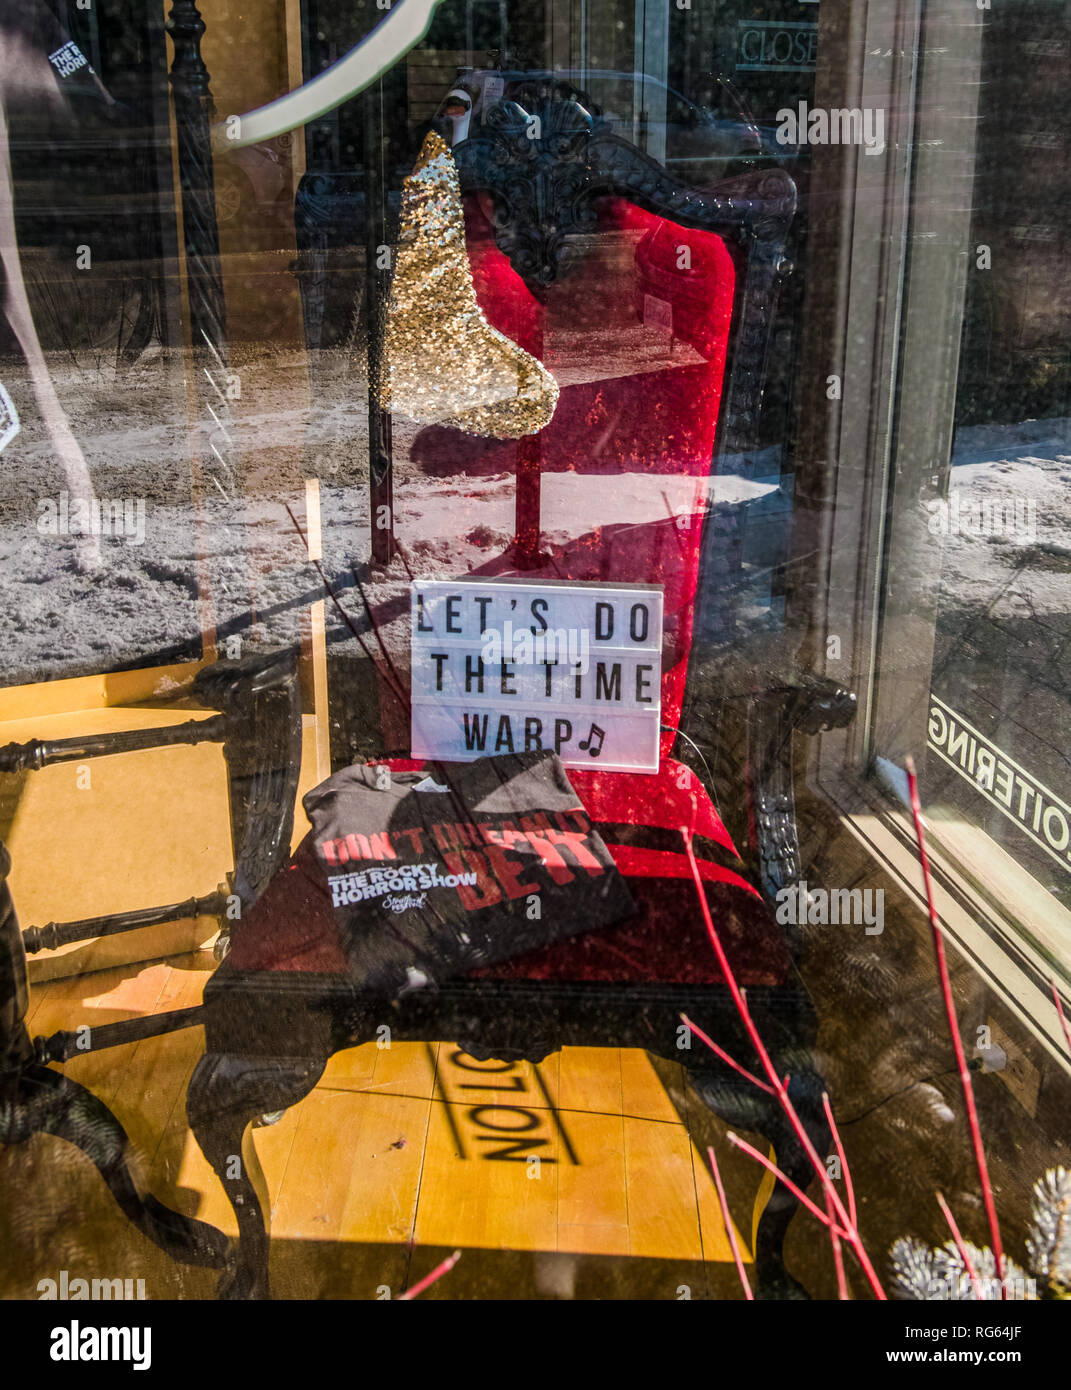 A closer look thru the window of Stratford Theatre Store. You see some items related to 'Lets Do Time Warp' musical horror play. - Stock Image